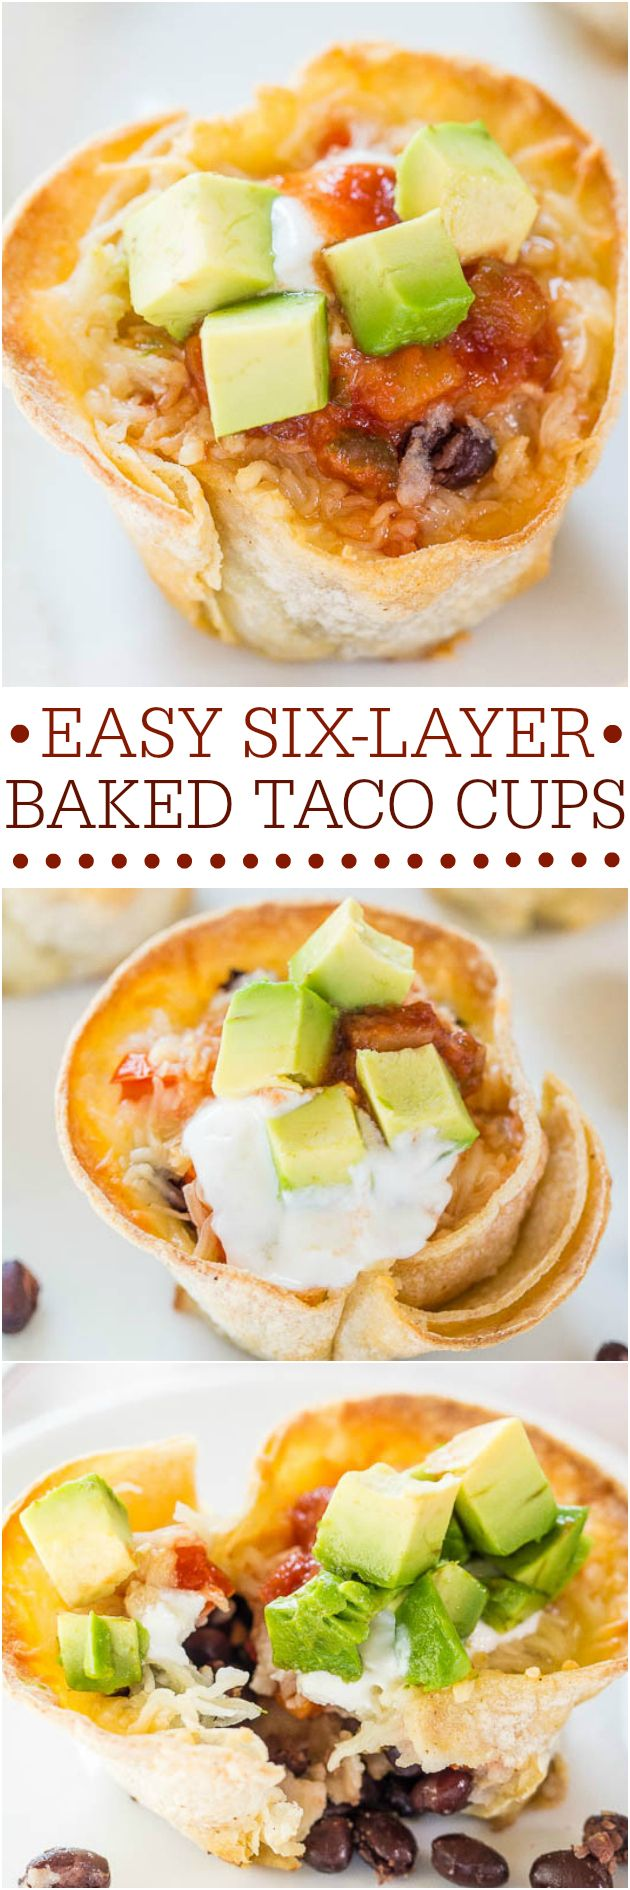 Easy Six-Layer Baked Taco Cups - Fast, easy, and accidentally healthy! Your favorite taco fixings in individually-portioned cups!! So fun!!!